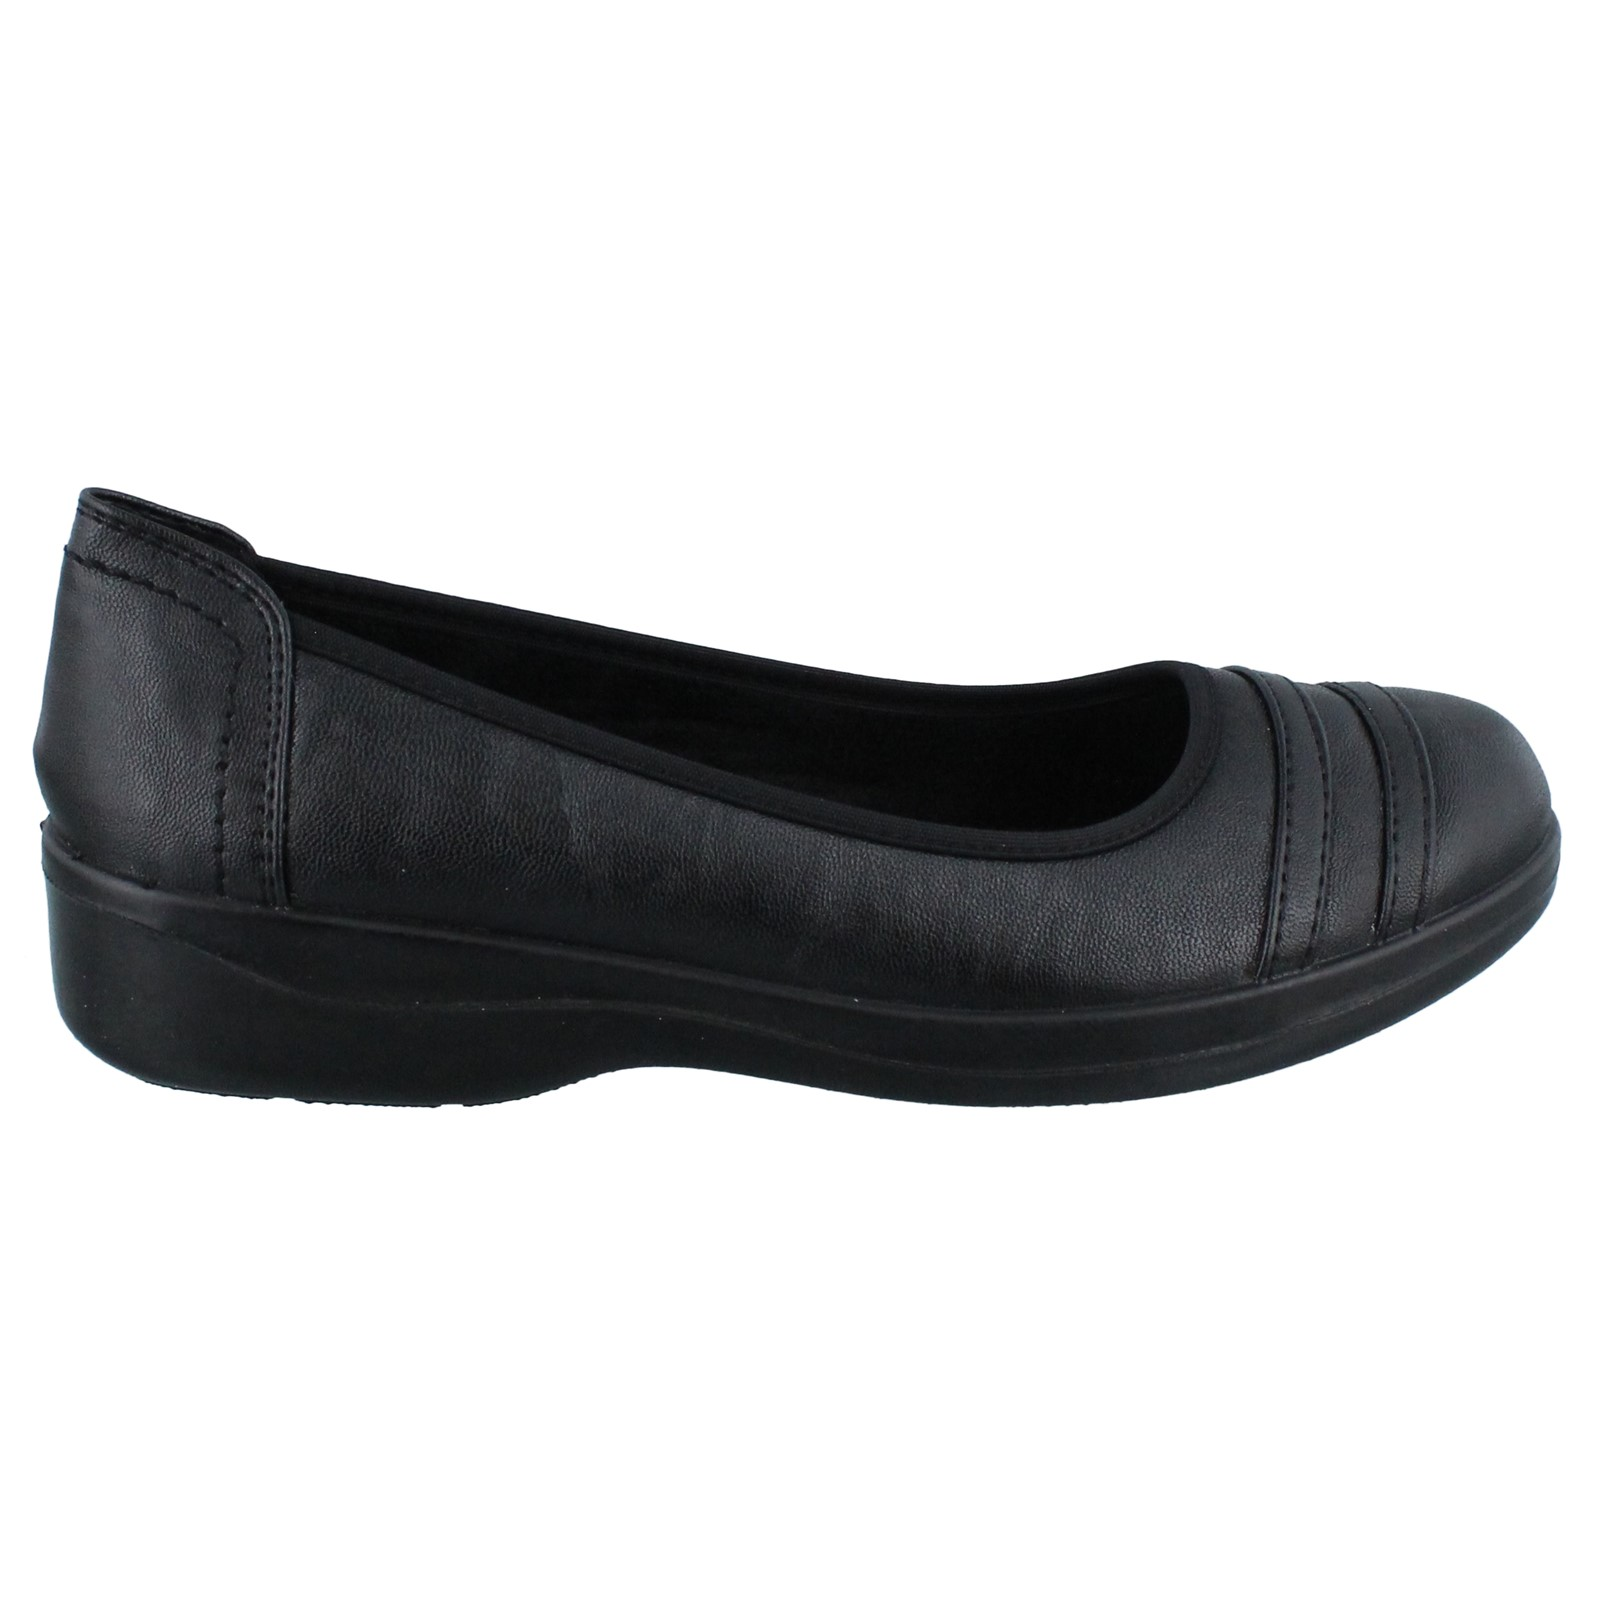 Women's Easy Street, Measure Slip on Shoes